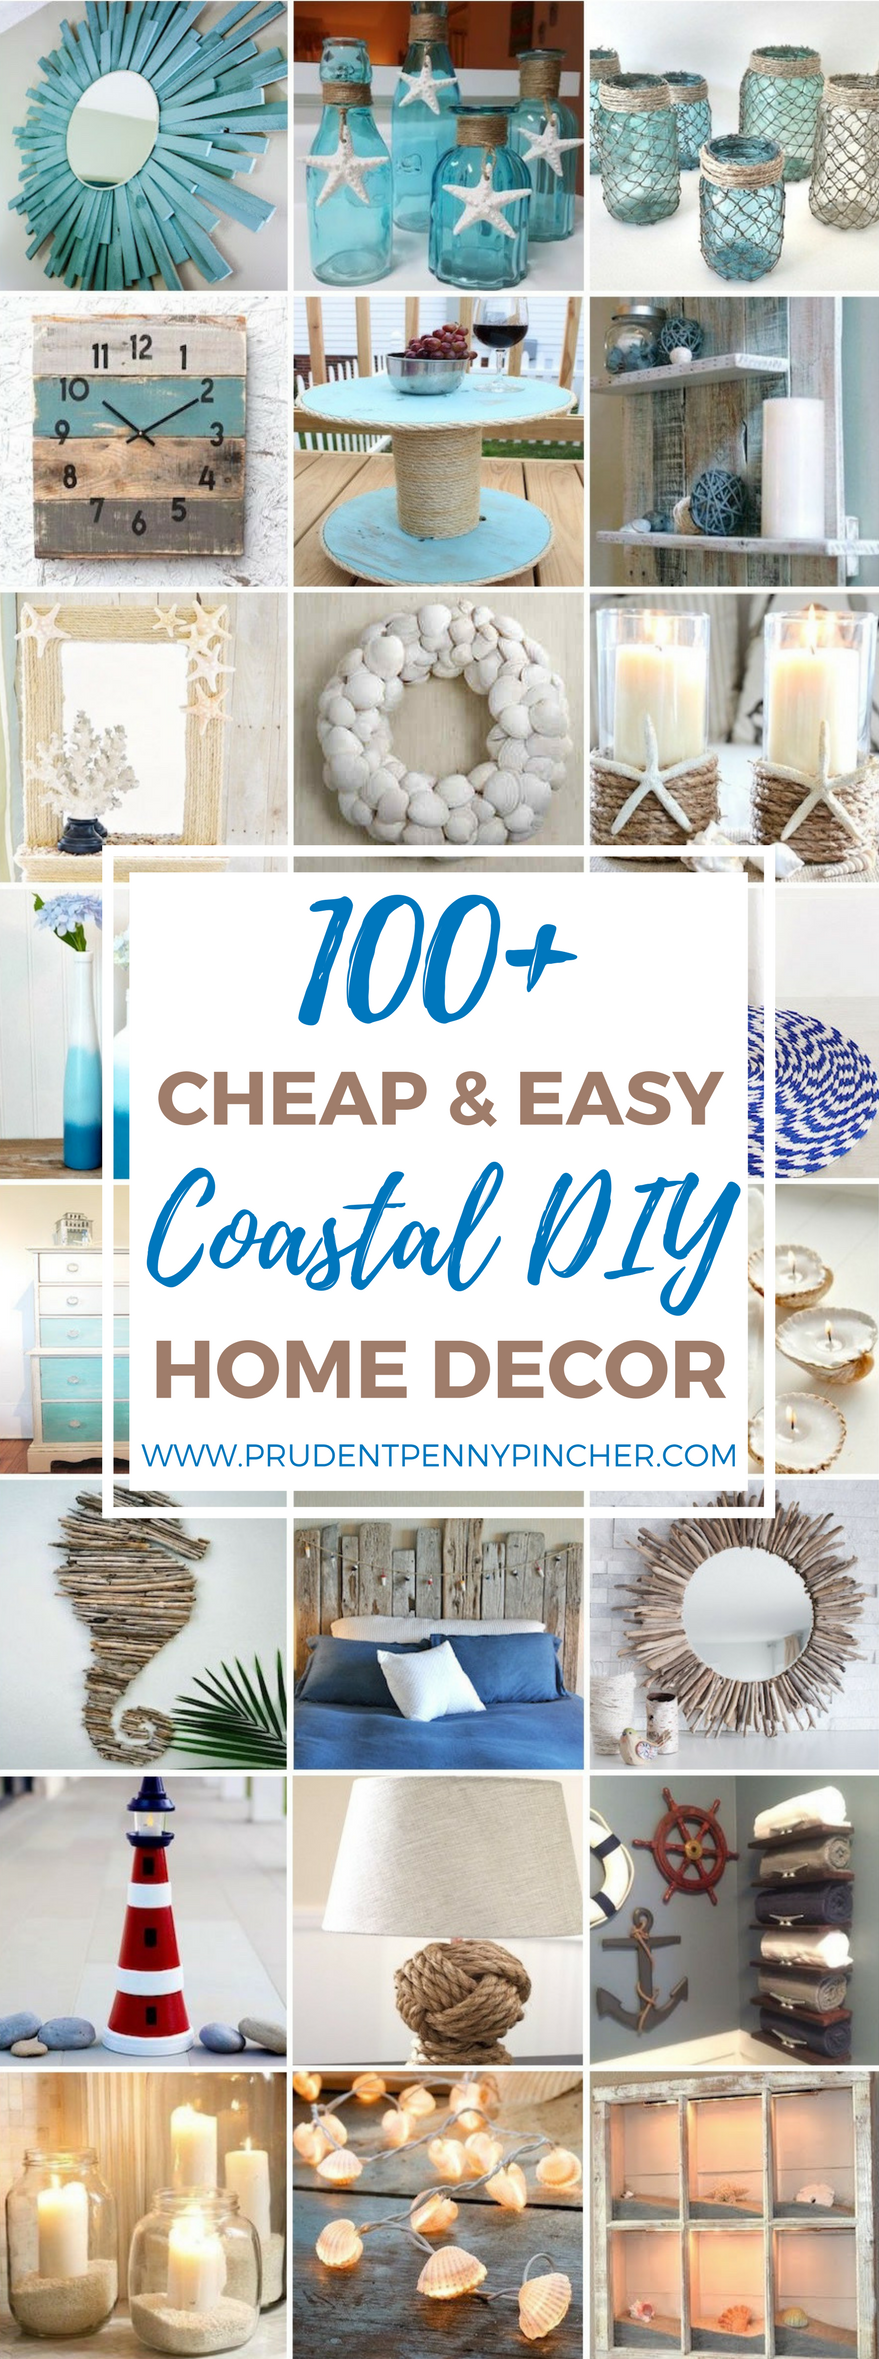 100 Cheap And Easy Coastal Diy Home Decor Ideas Prudent